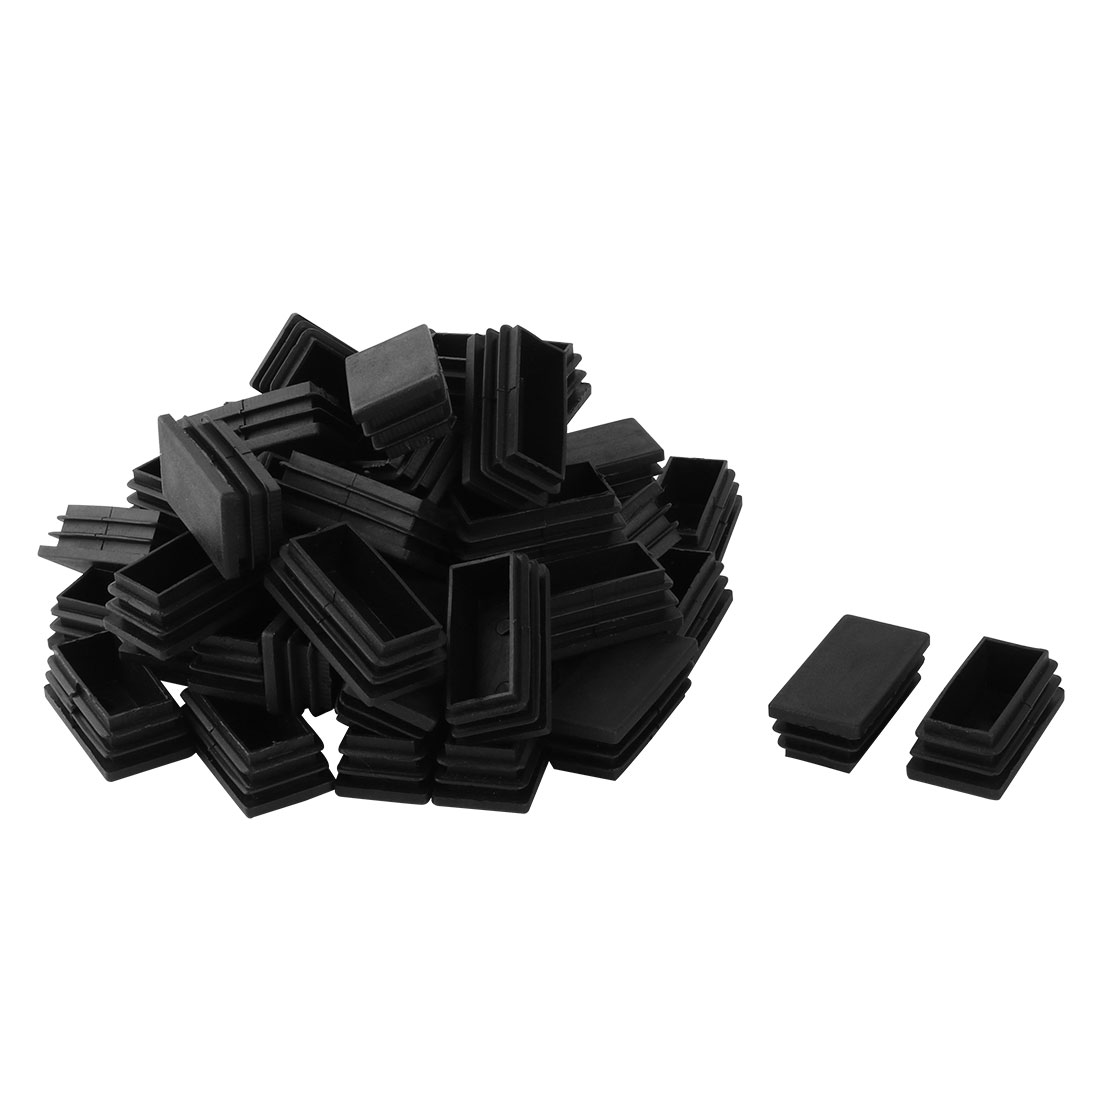 Home Plastic Rectangle Tube Inserts End Blanking Cap Black 25mm x 50mm 50 Pcs